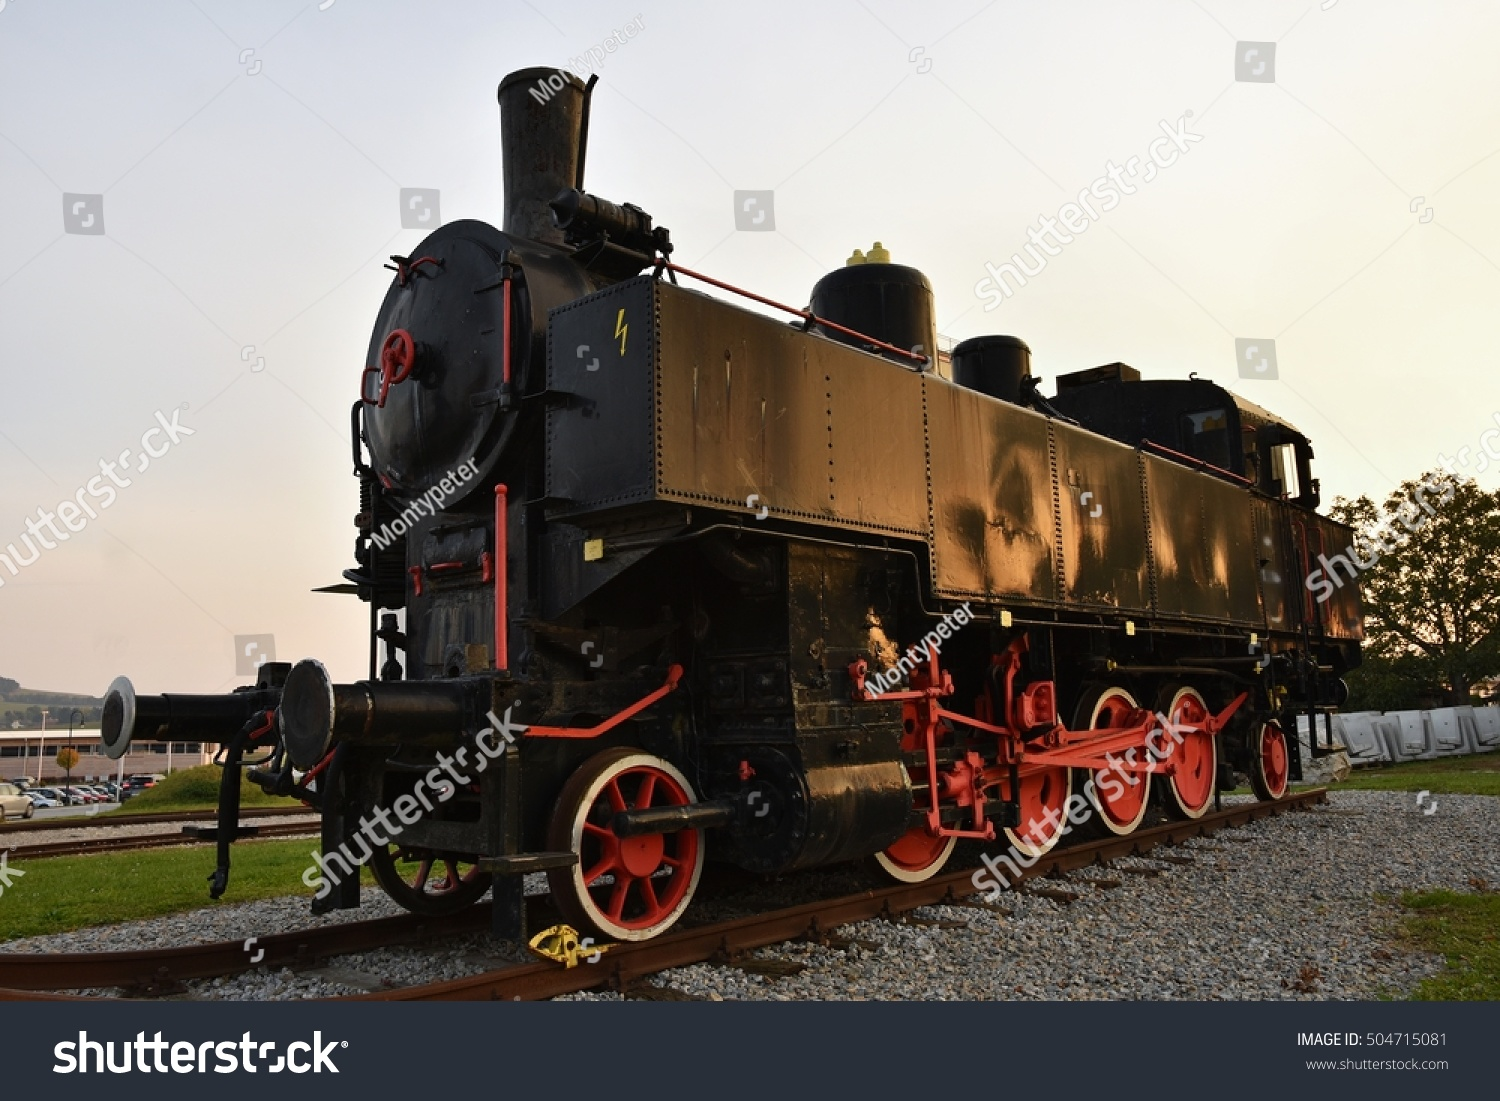 1000+ best The United States of America images by Sandy on ...